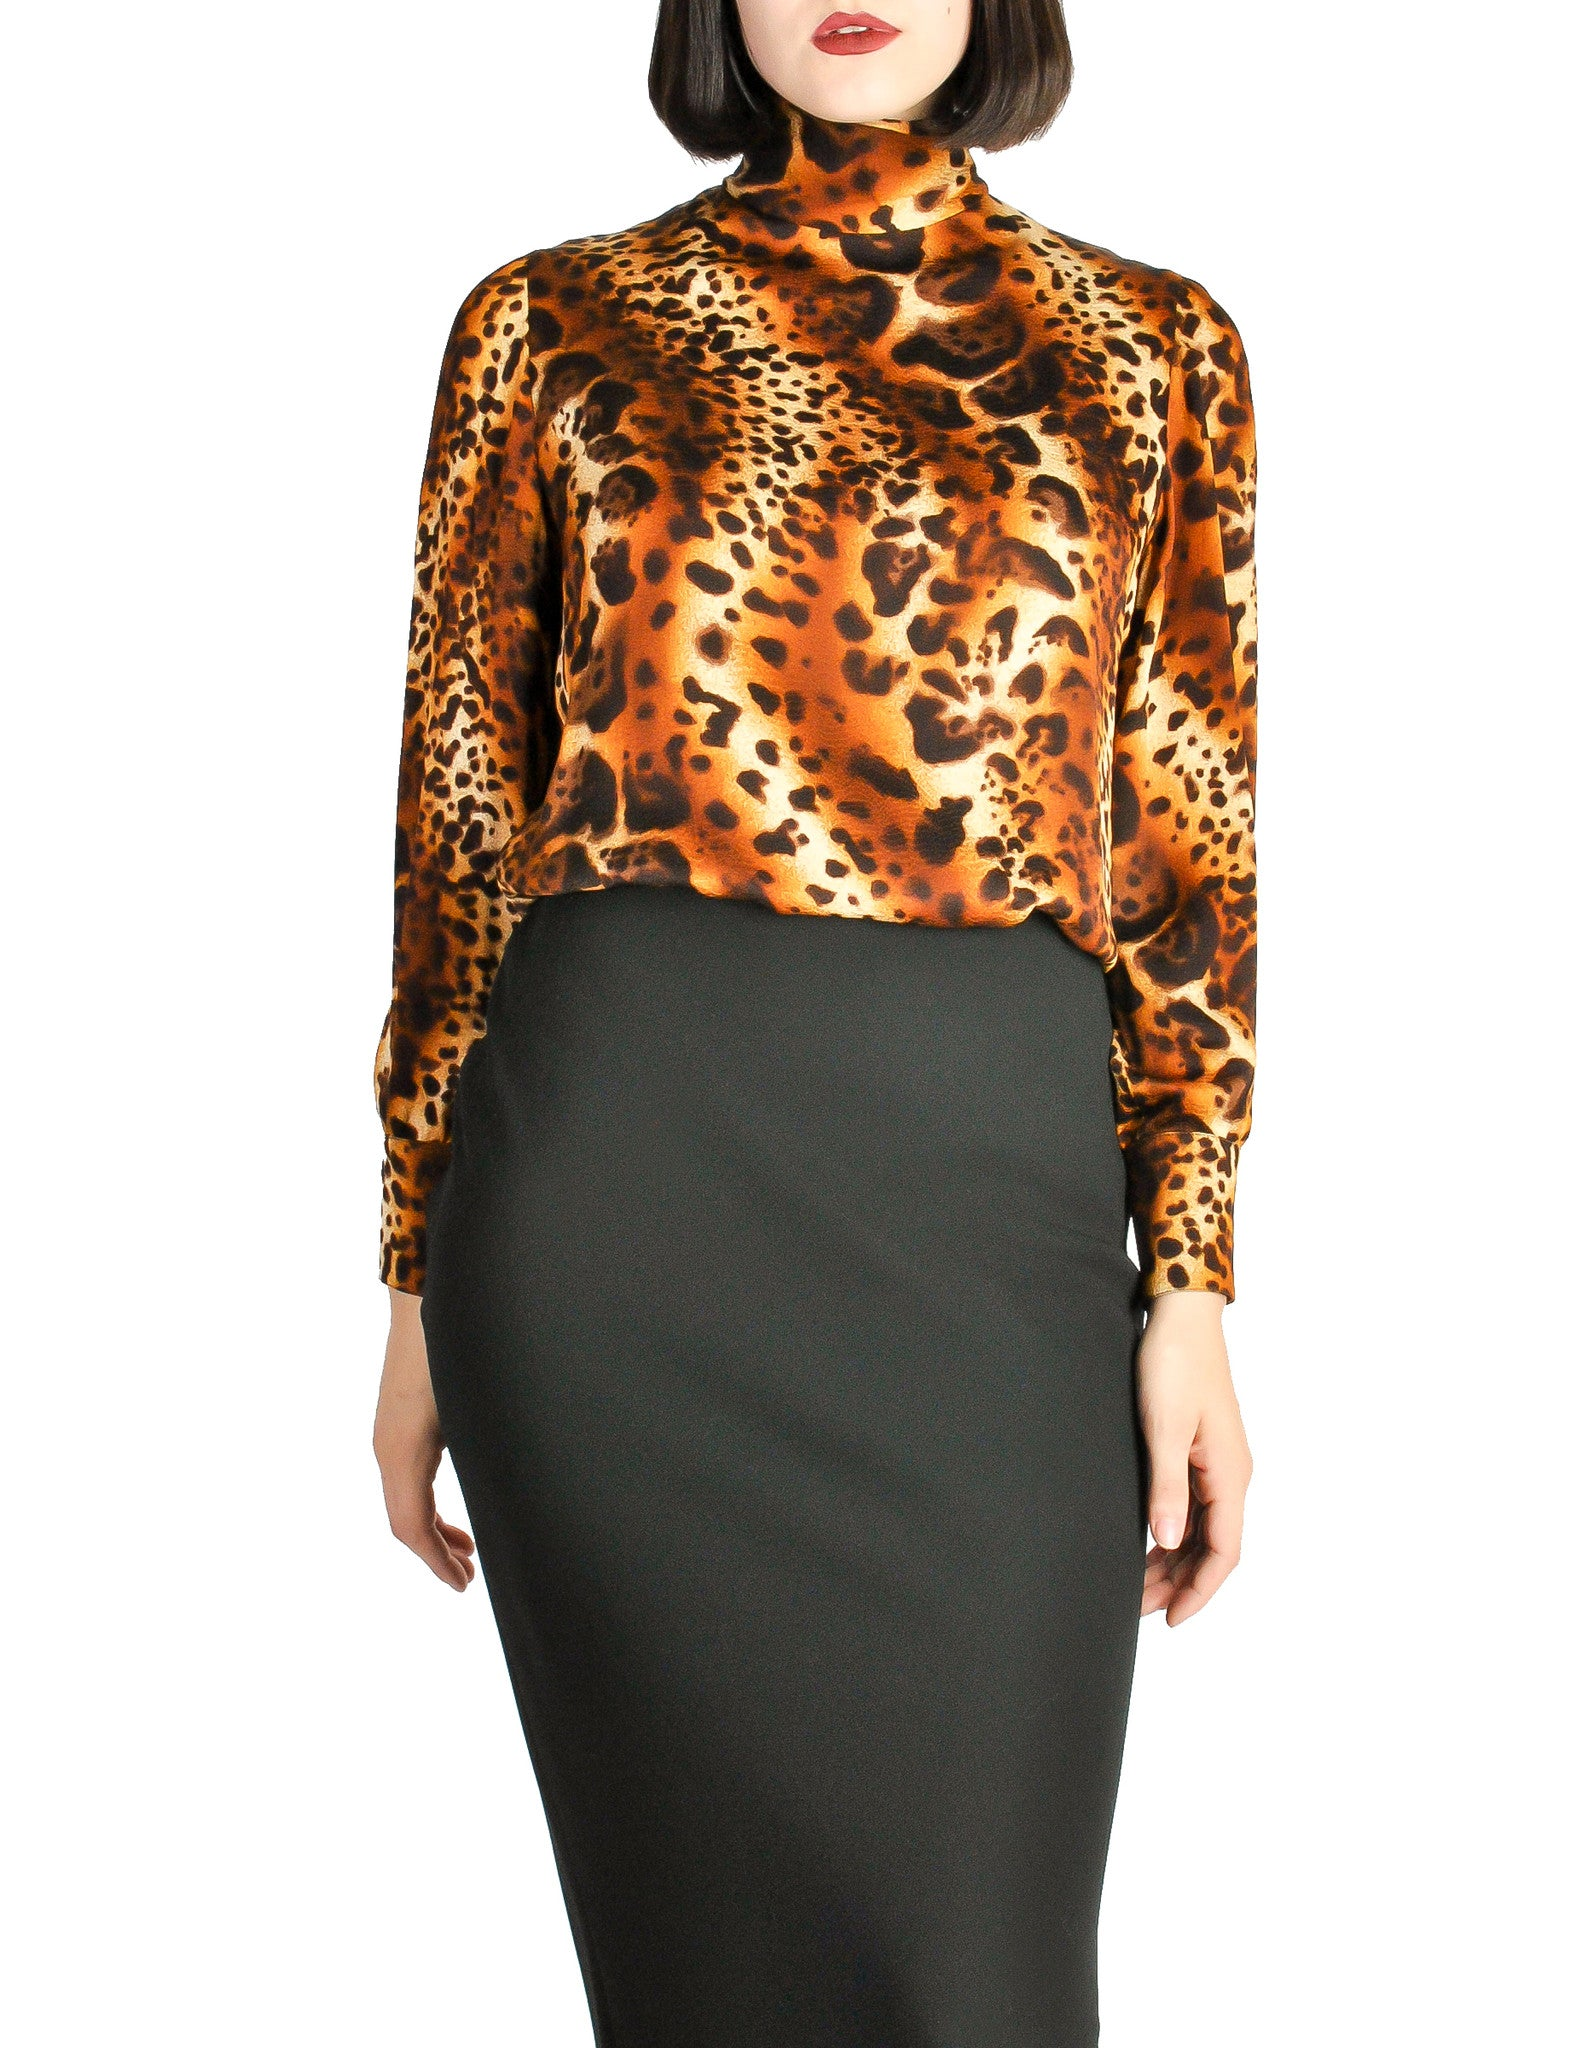 Ungaro Vintage Leopard Print Silk Turtleneck Top - Amarcord Vintage Fashion  - 1